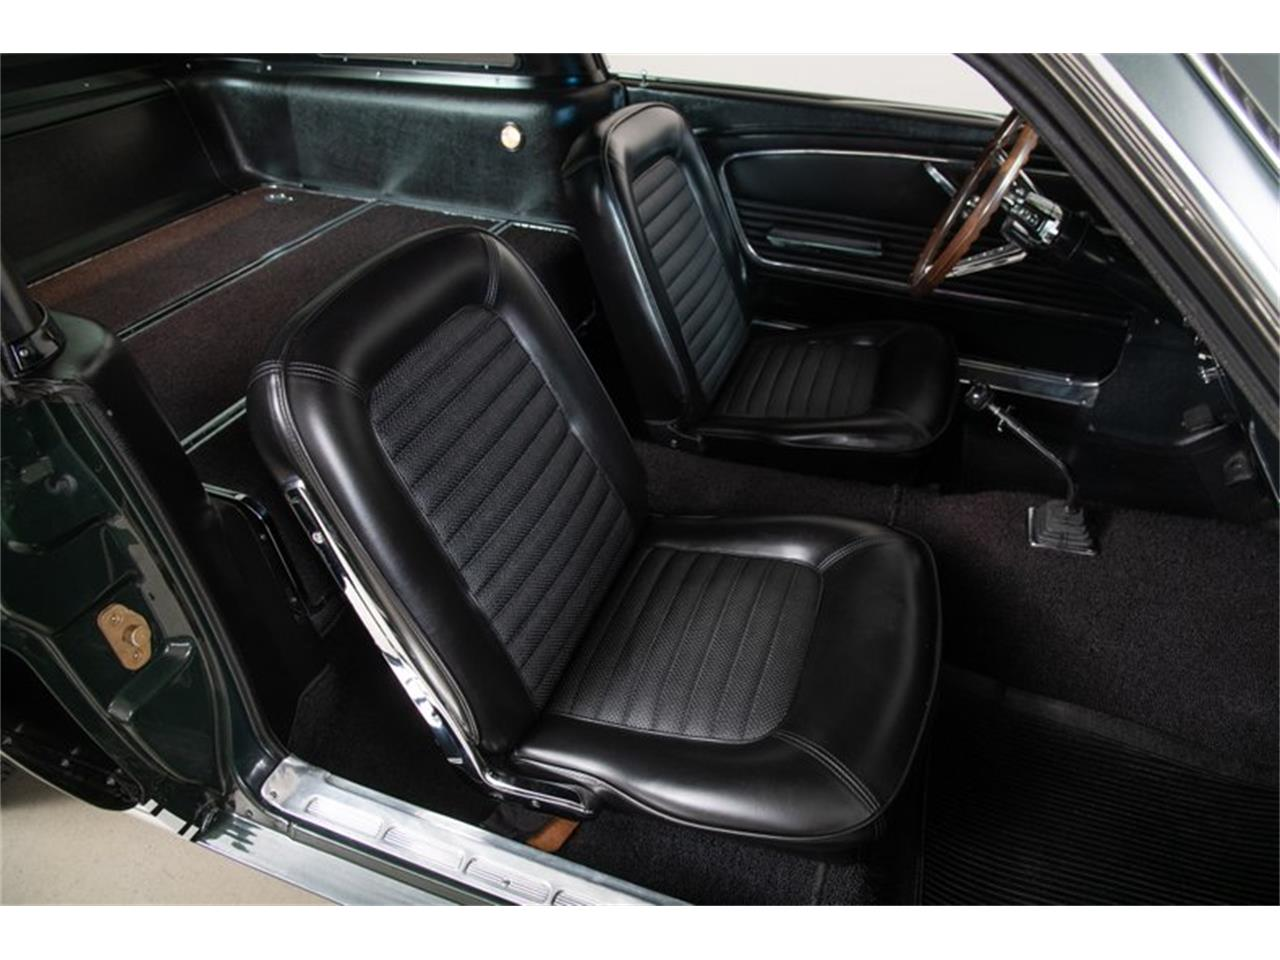 Large Picture of 1966 GT350 located in Scotts Valley California Auction Vehicle Offered by Canepa - QKPF